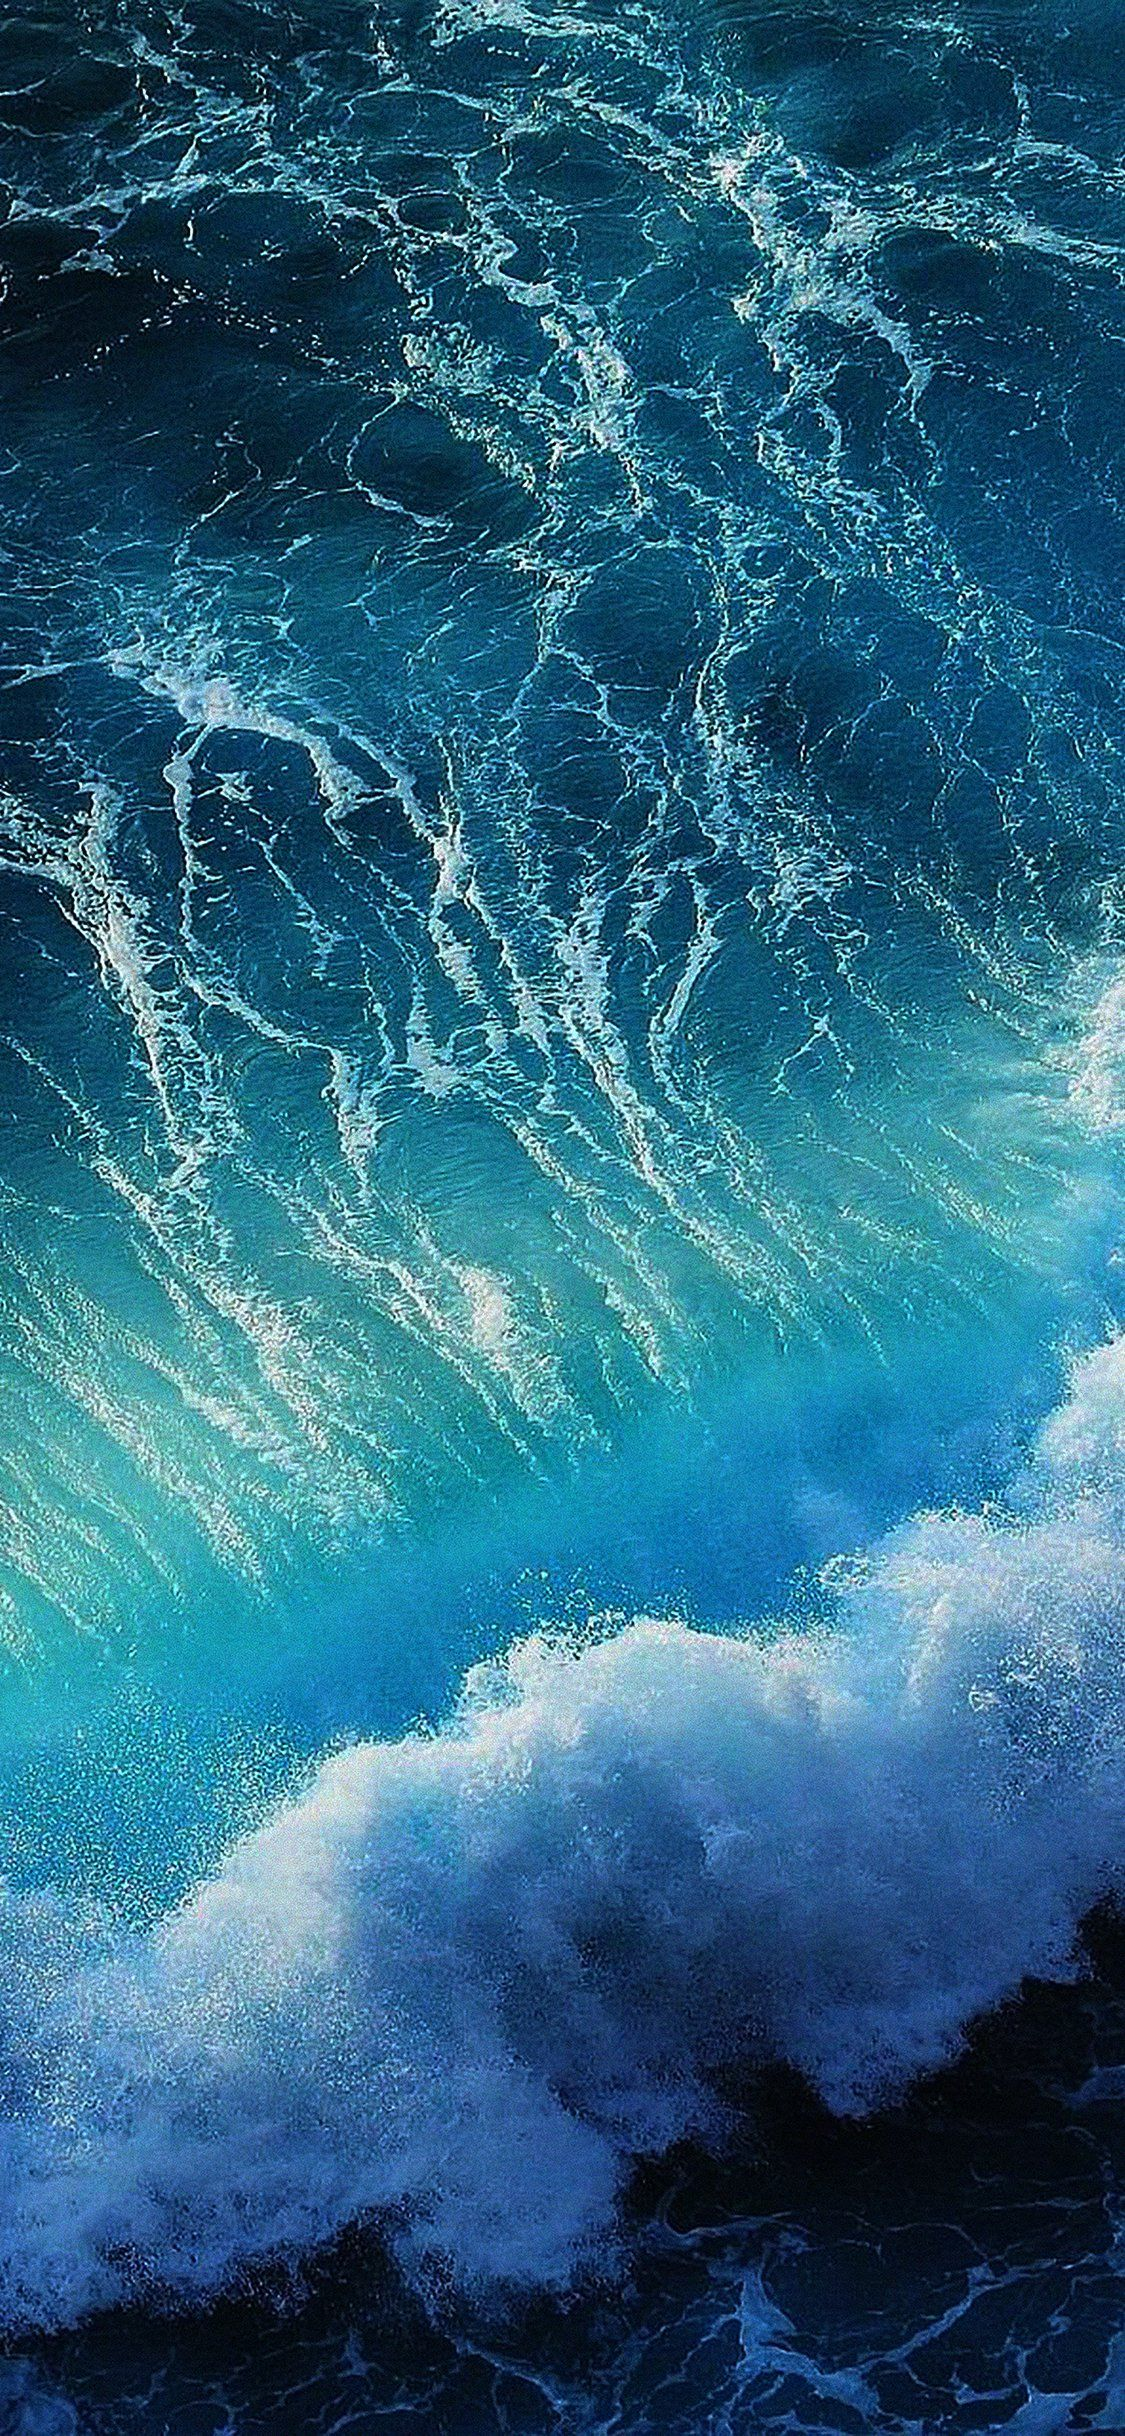 Wave Ocean Iphone X Waves wallpaper, Ocean waves, Ios 11